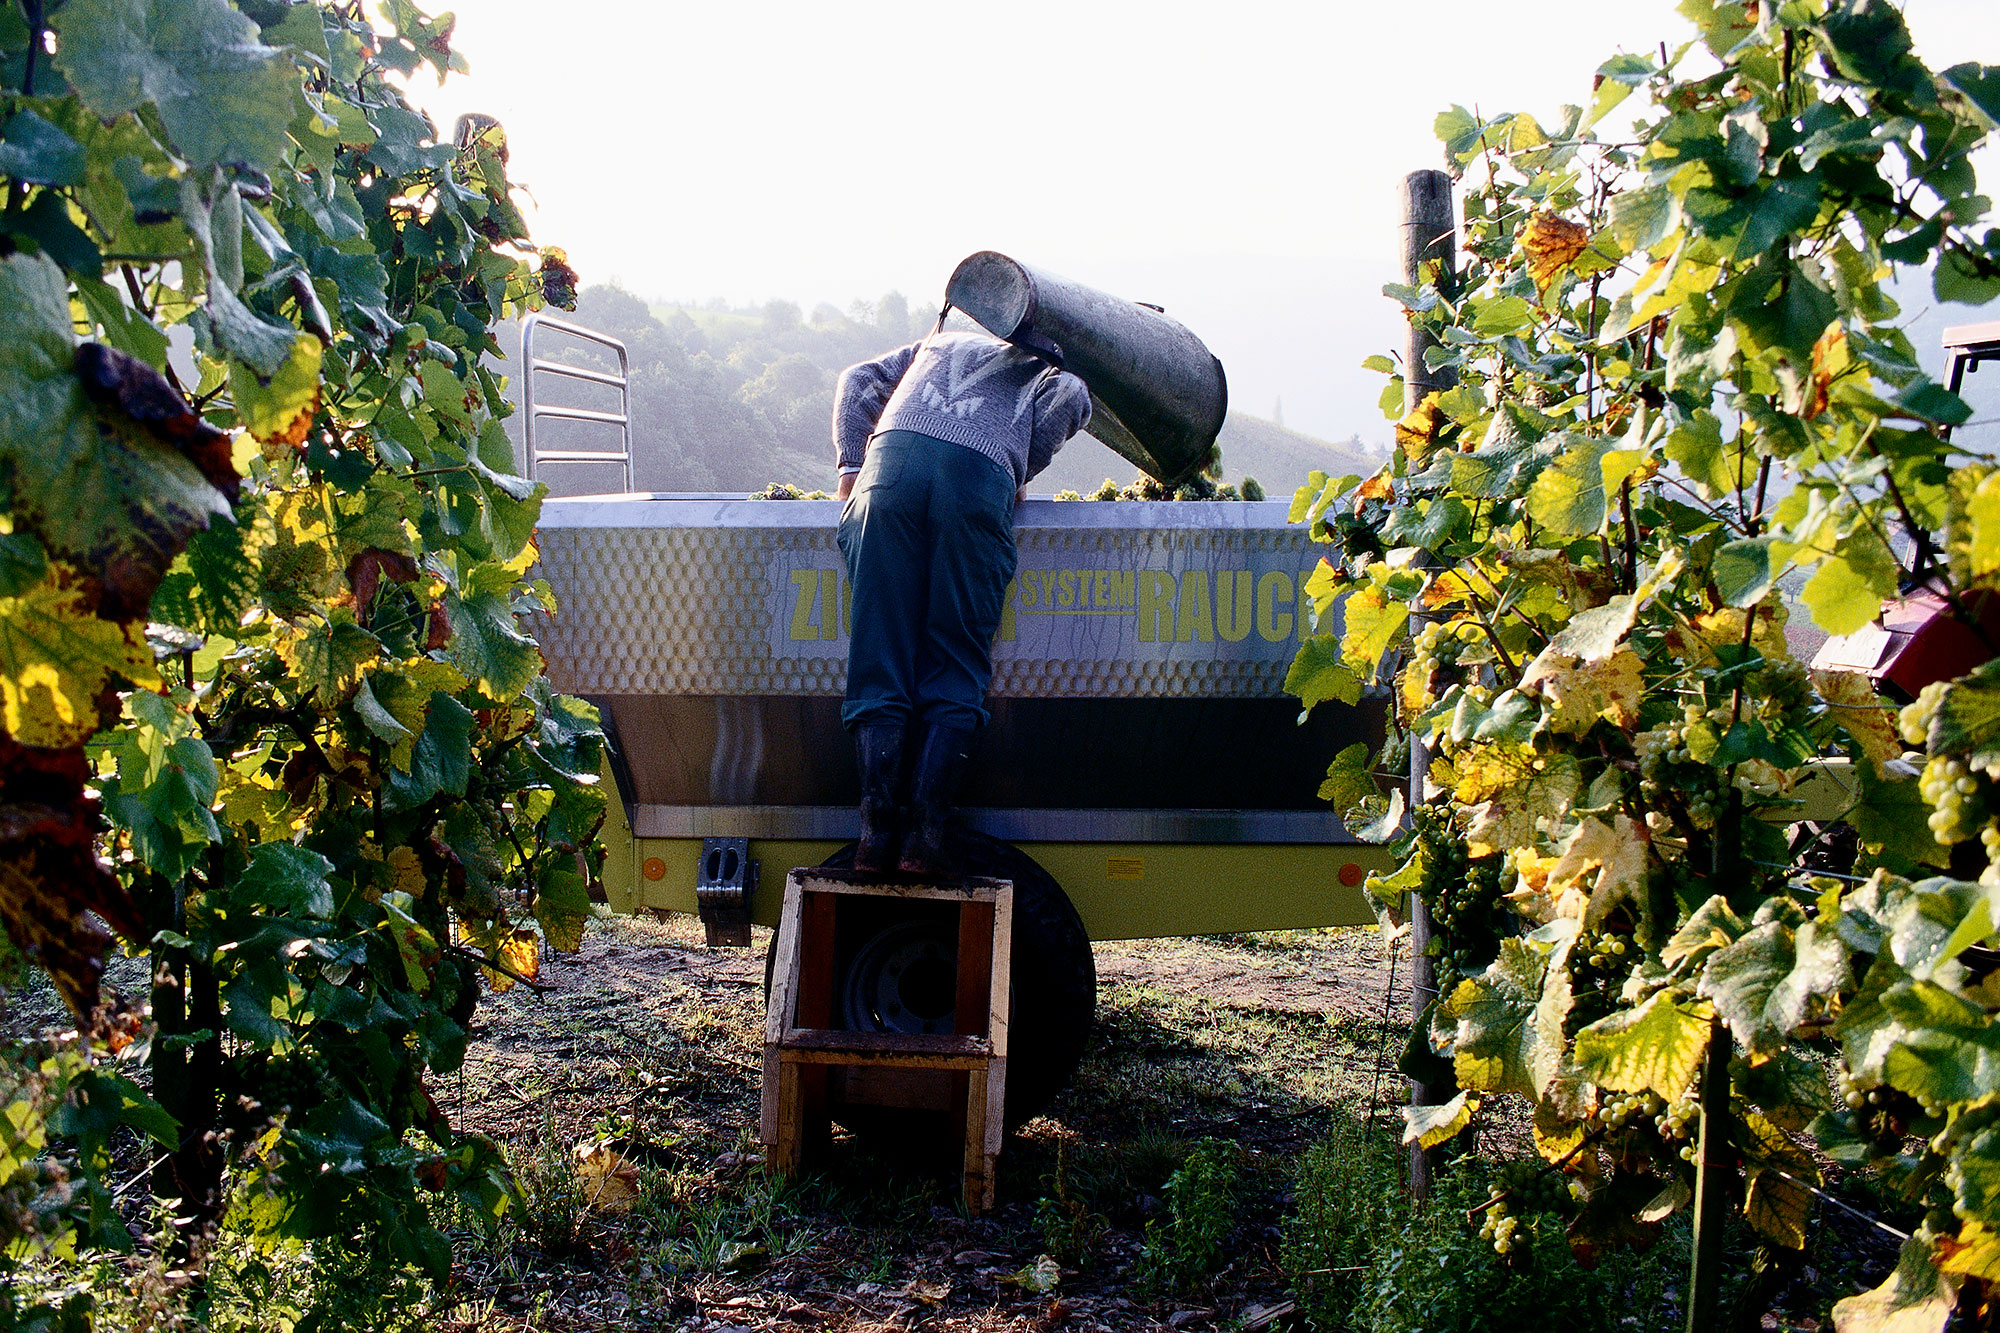 A man harvests grapes for wine near the Moselle river in France